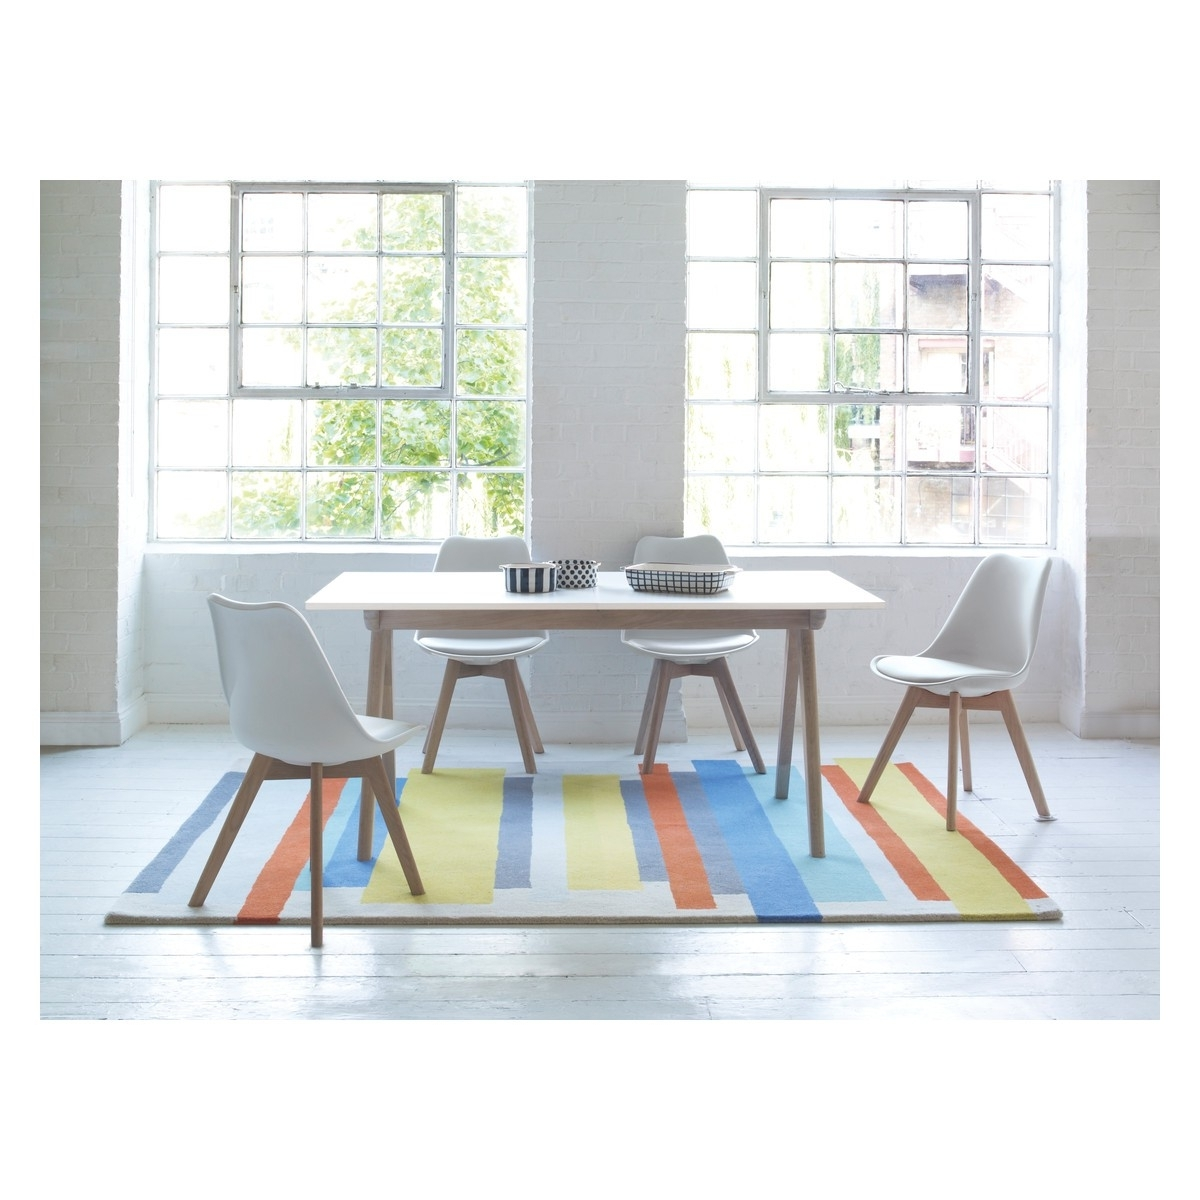 Well Liked White Dining Sets Intended For Jerry Dining Set With White Extending Table And 4 White Chairs (View 2 of 25)